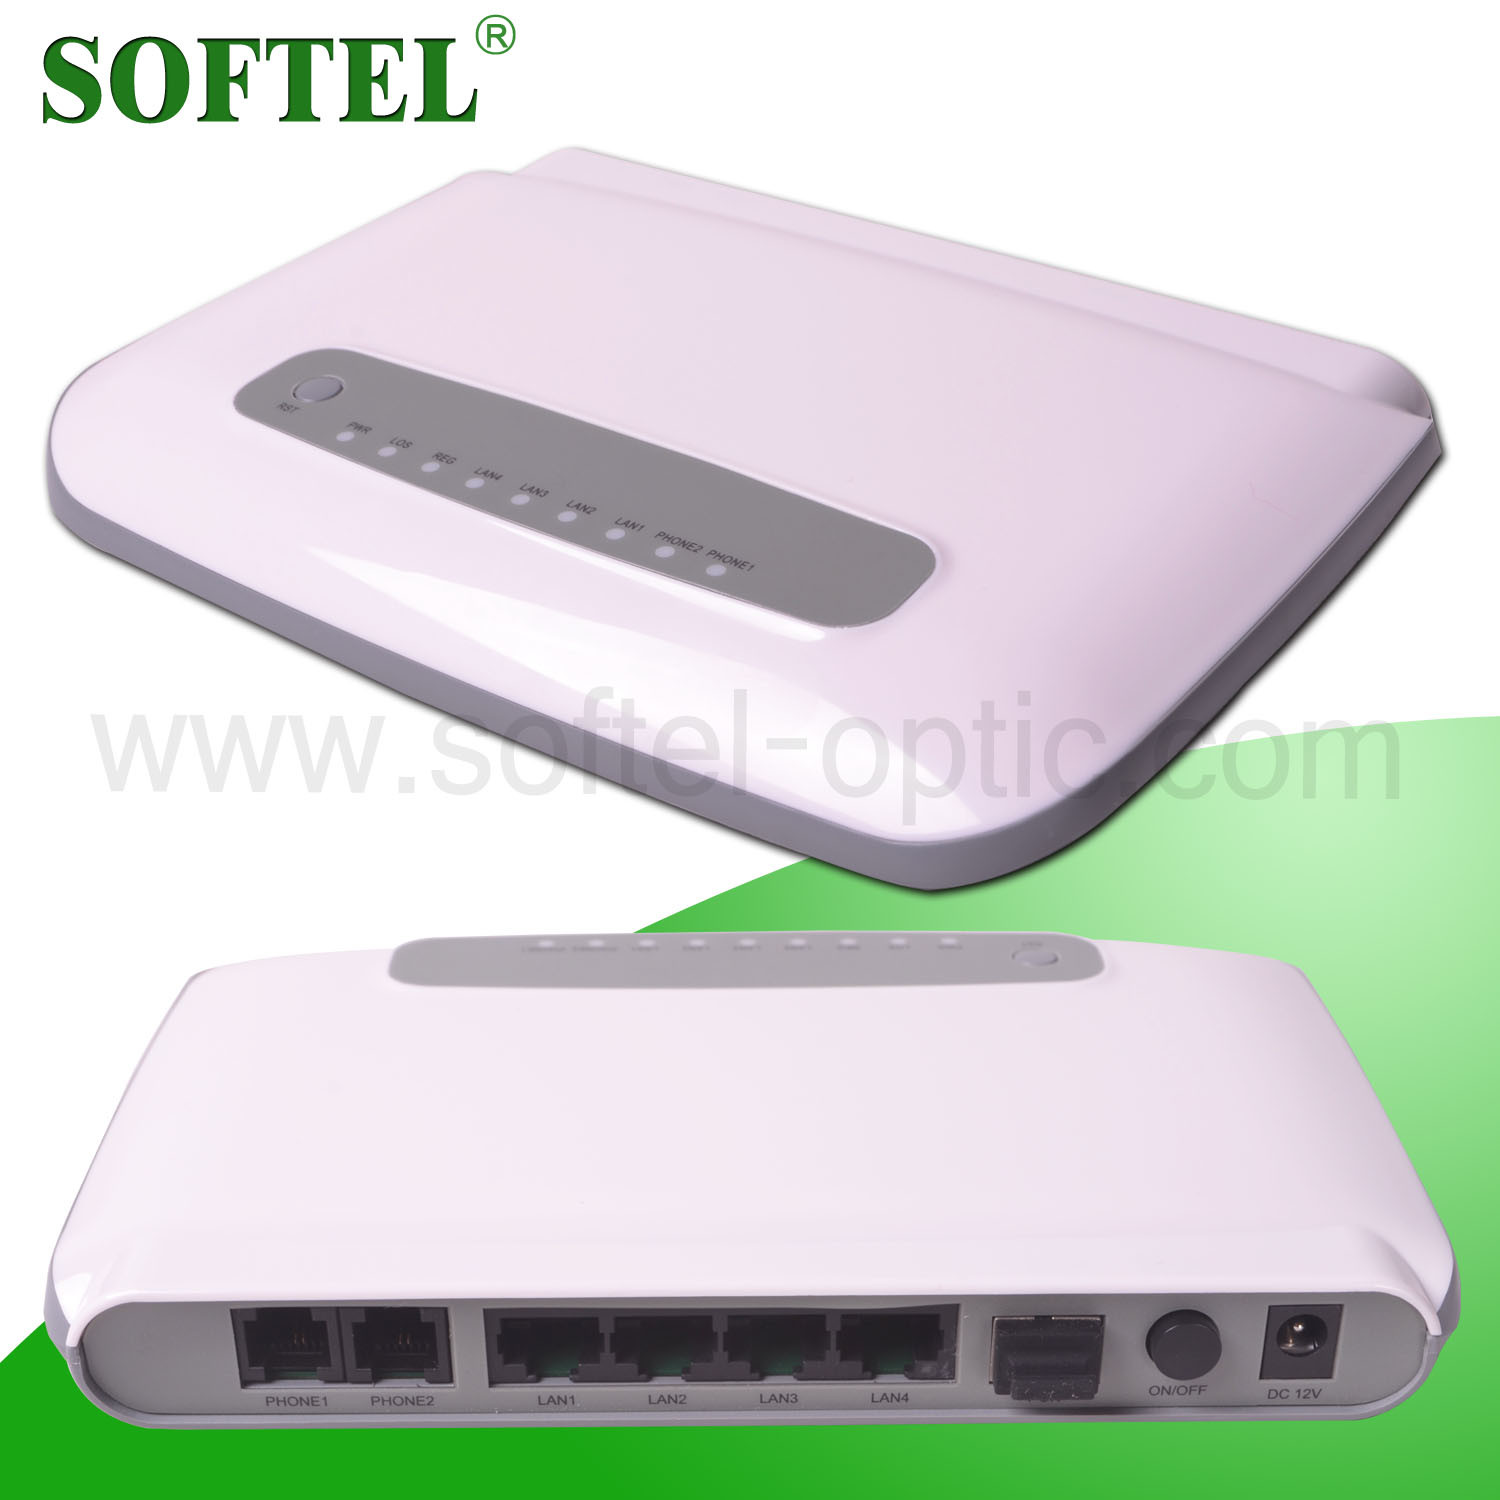 1gbps Uplink Pon, 4*10/100m Base-T Downlink Pon Ports VoIP Gepon ONU, FTTH 4 RJ45 Interfaces Epon ONU with RF Ports